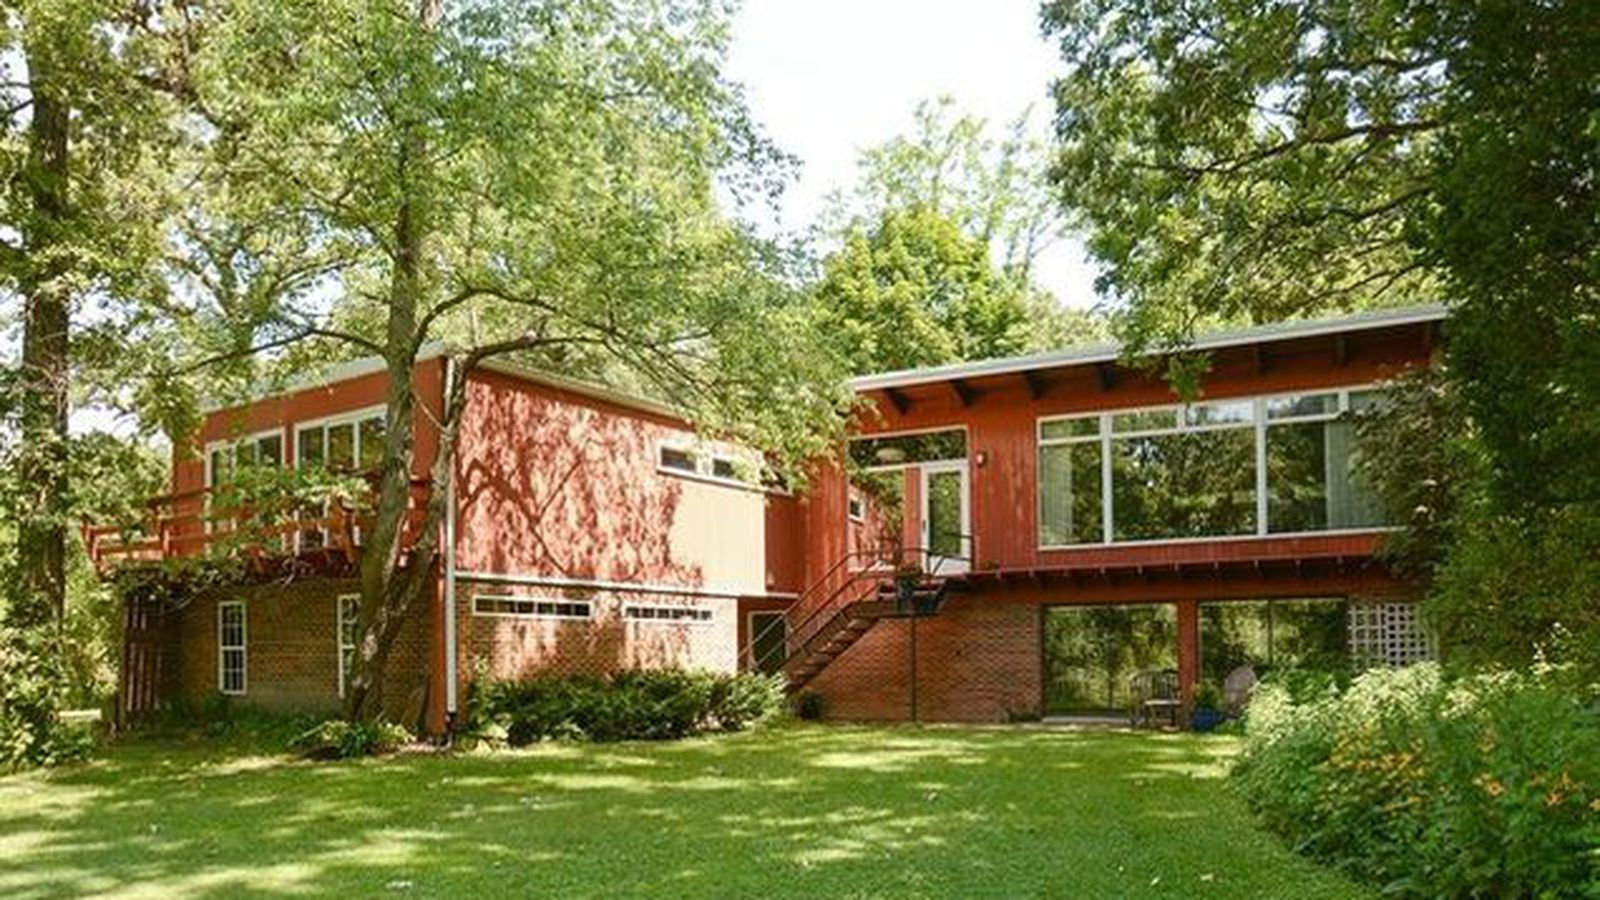 Walnut paneled palos mid century on two acres wants 449k Century home builders